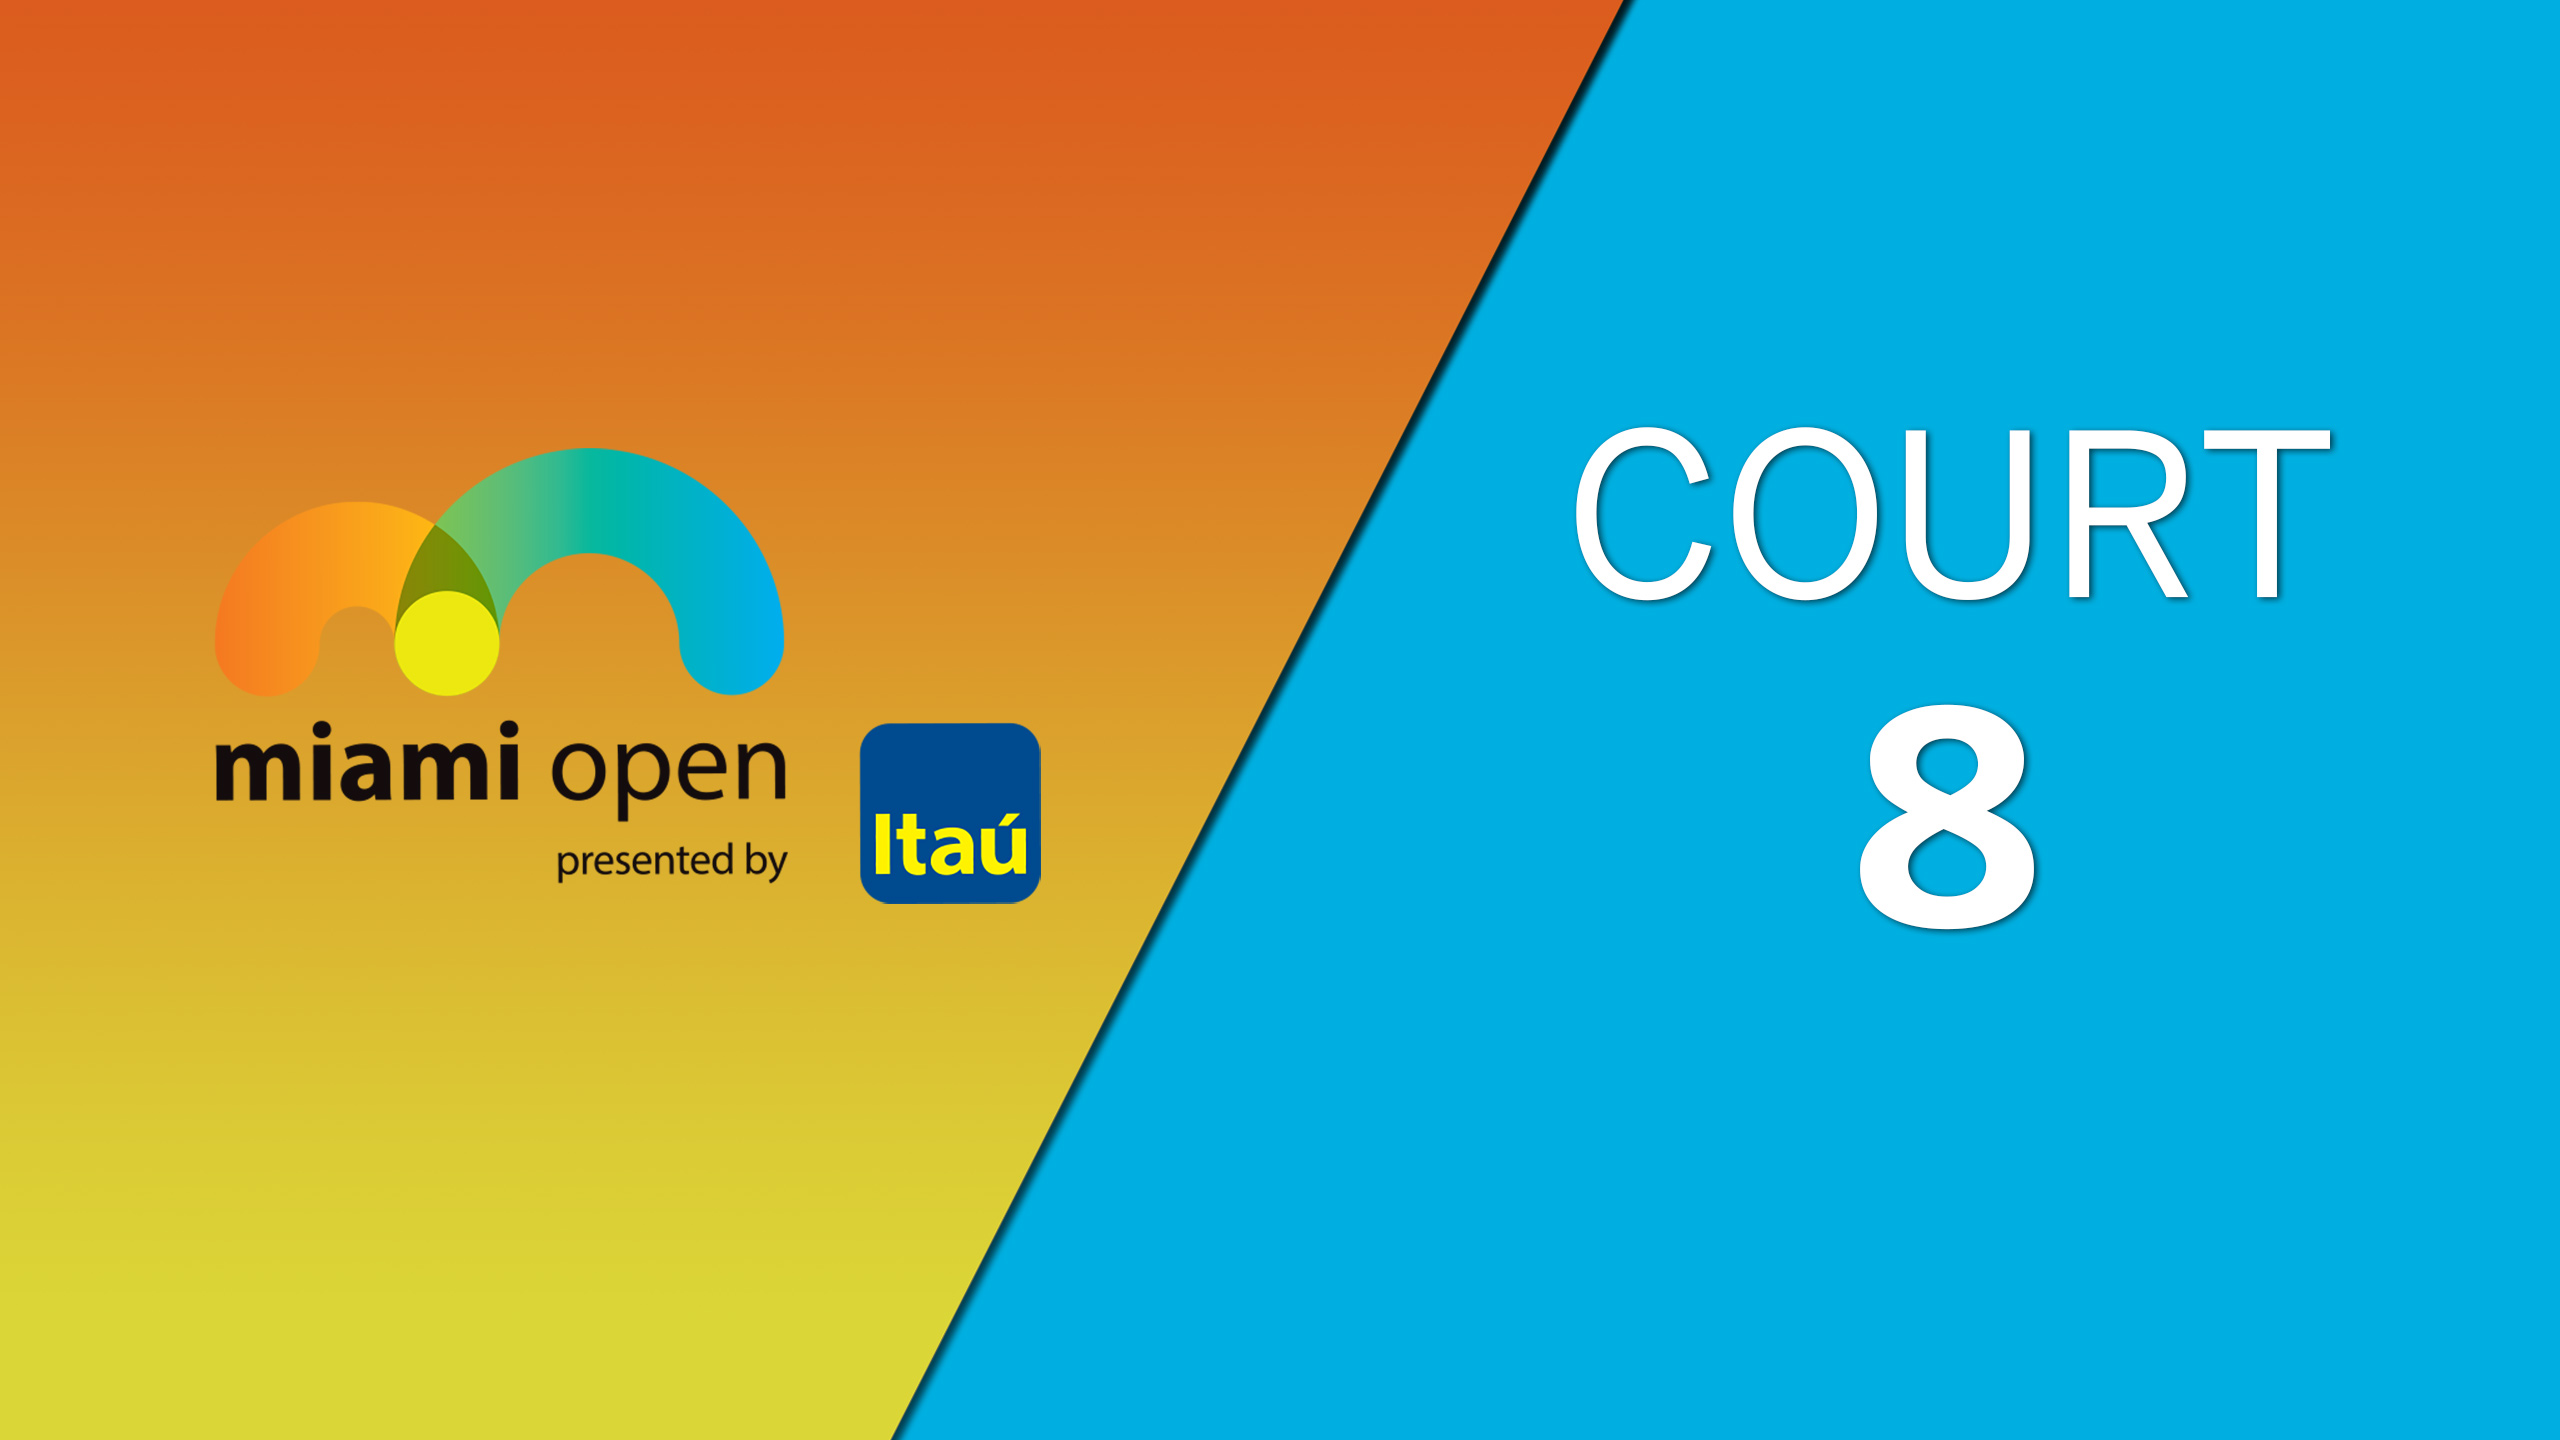 WTA: Court 8 - Miami Open